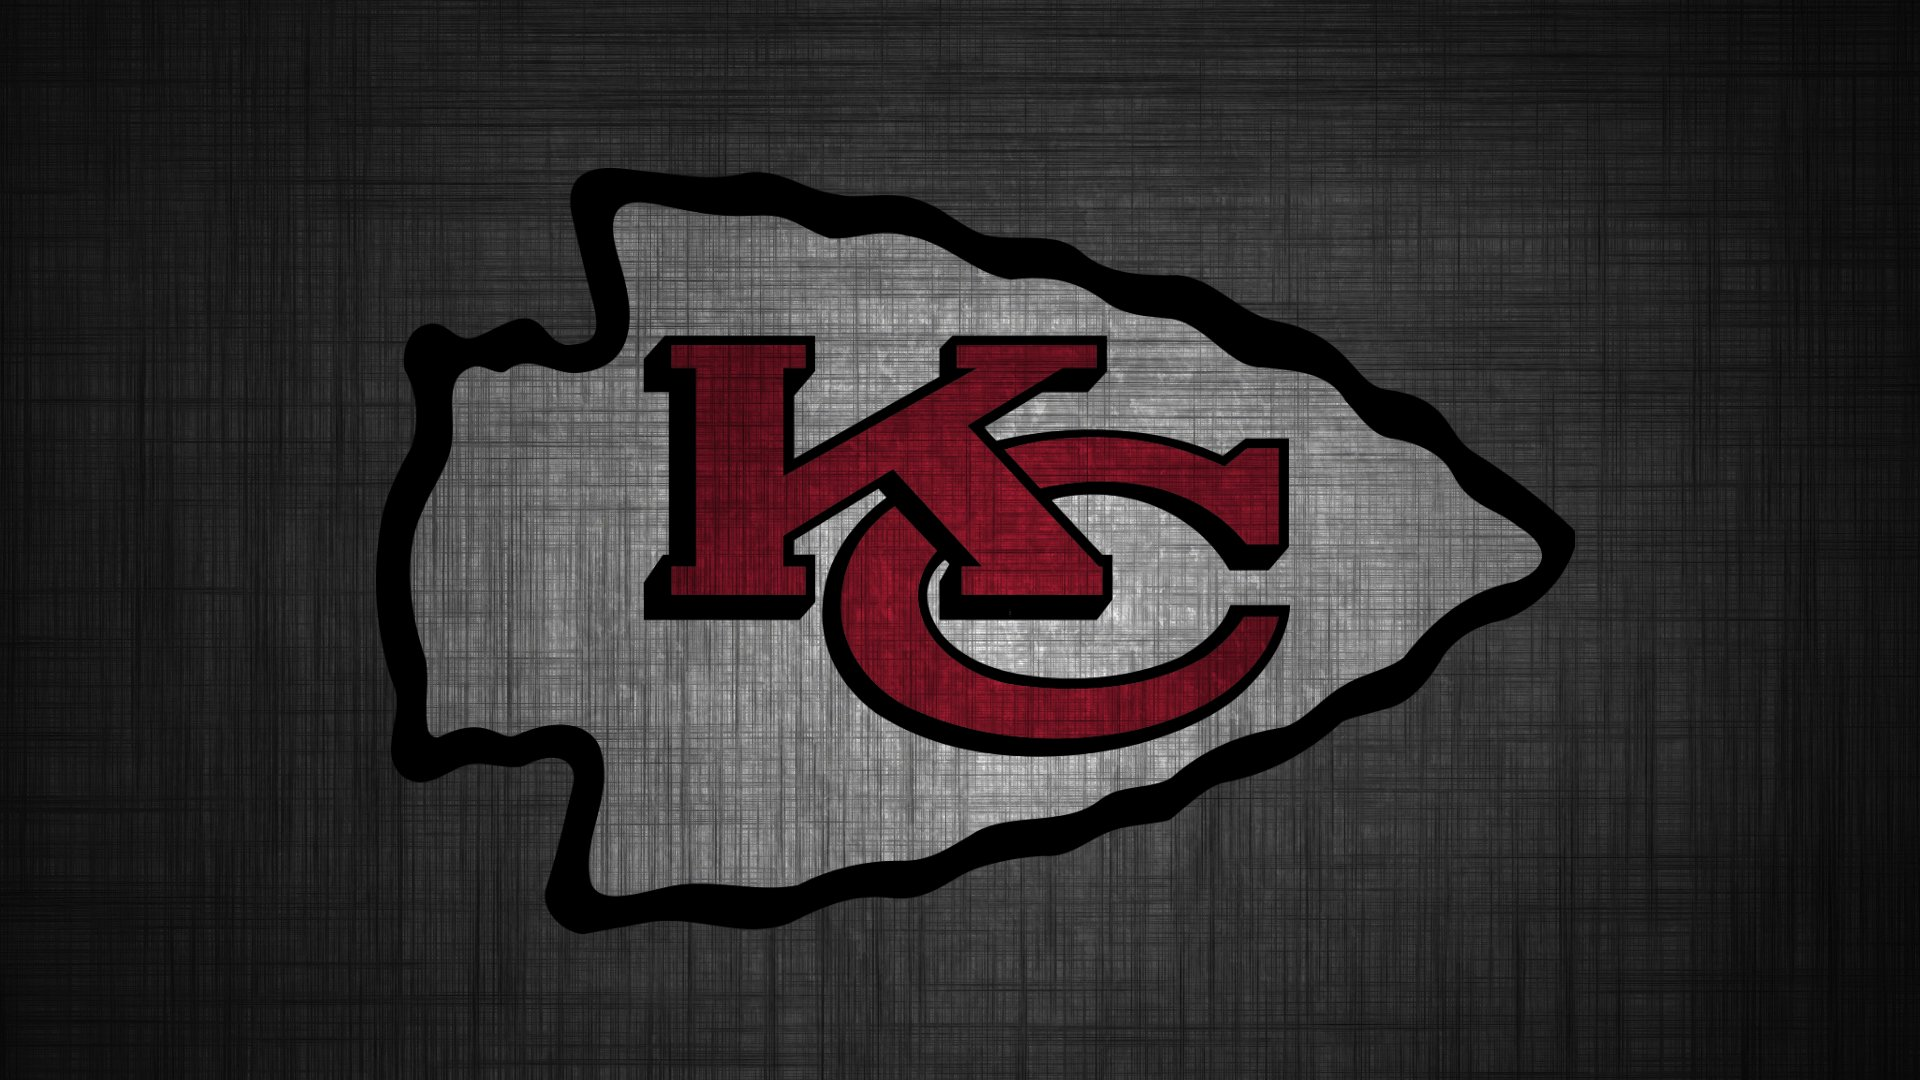 Chiefs Iphone Wallpaper Kansas City Chiefs Hd Wallpaper Full Hd Pictures